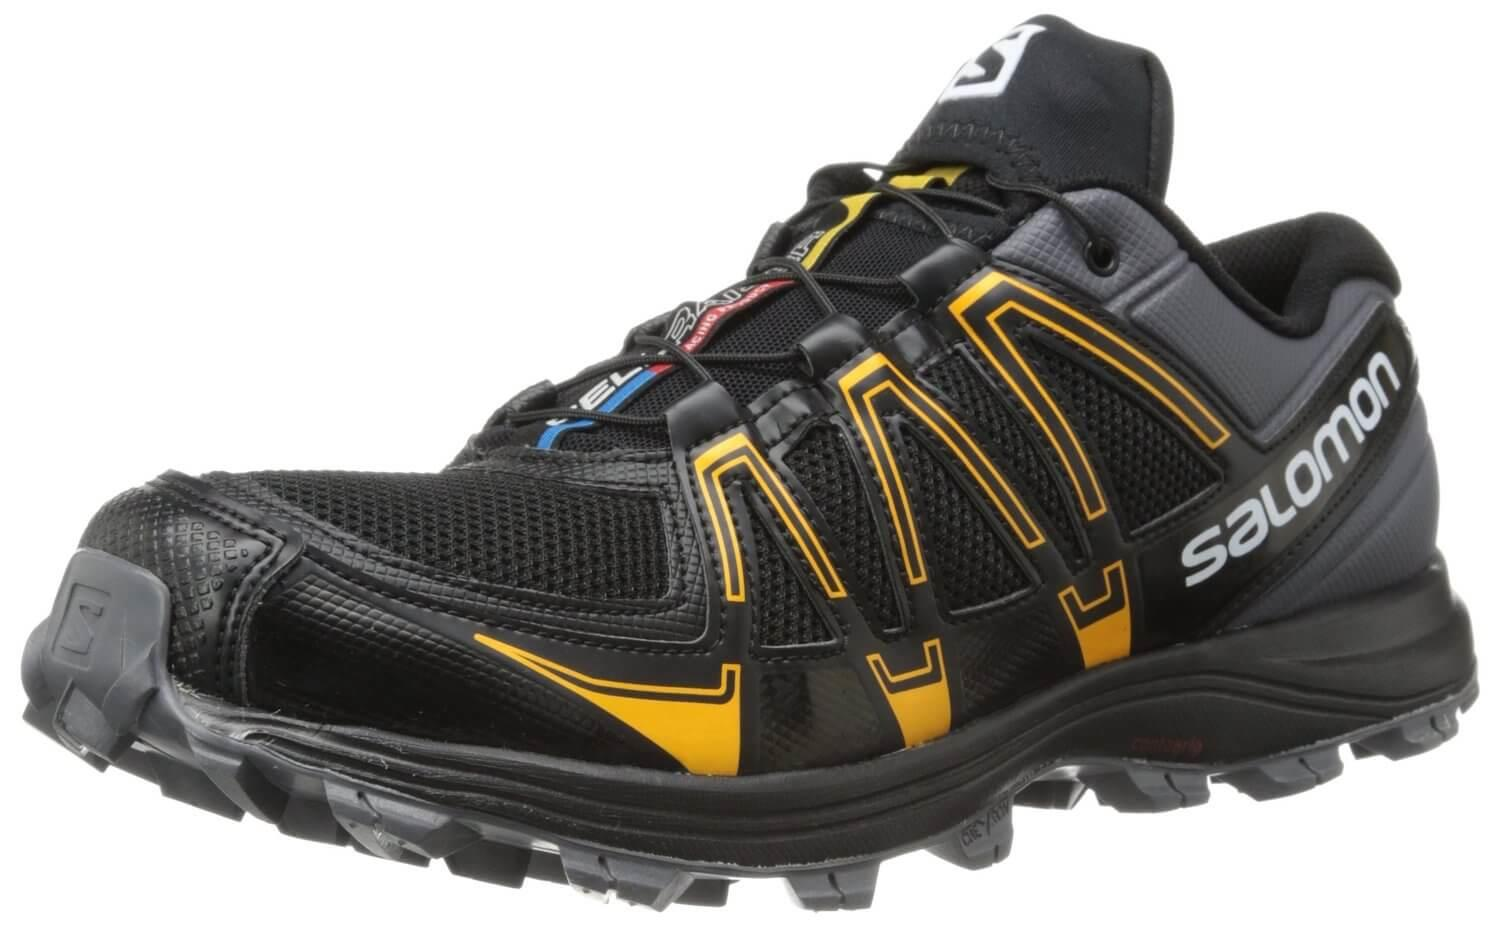 Salomon Fellraiser Review They Grip Mud And They're Yellow!